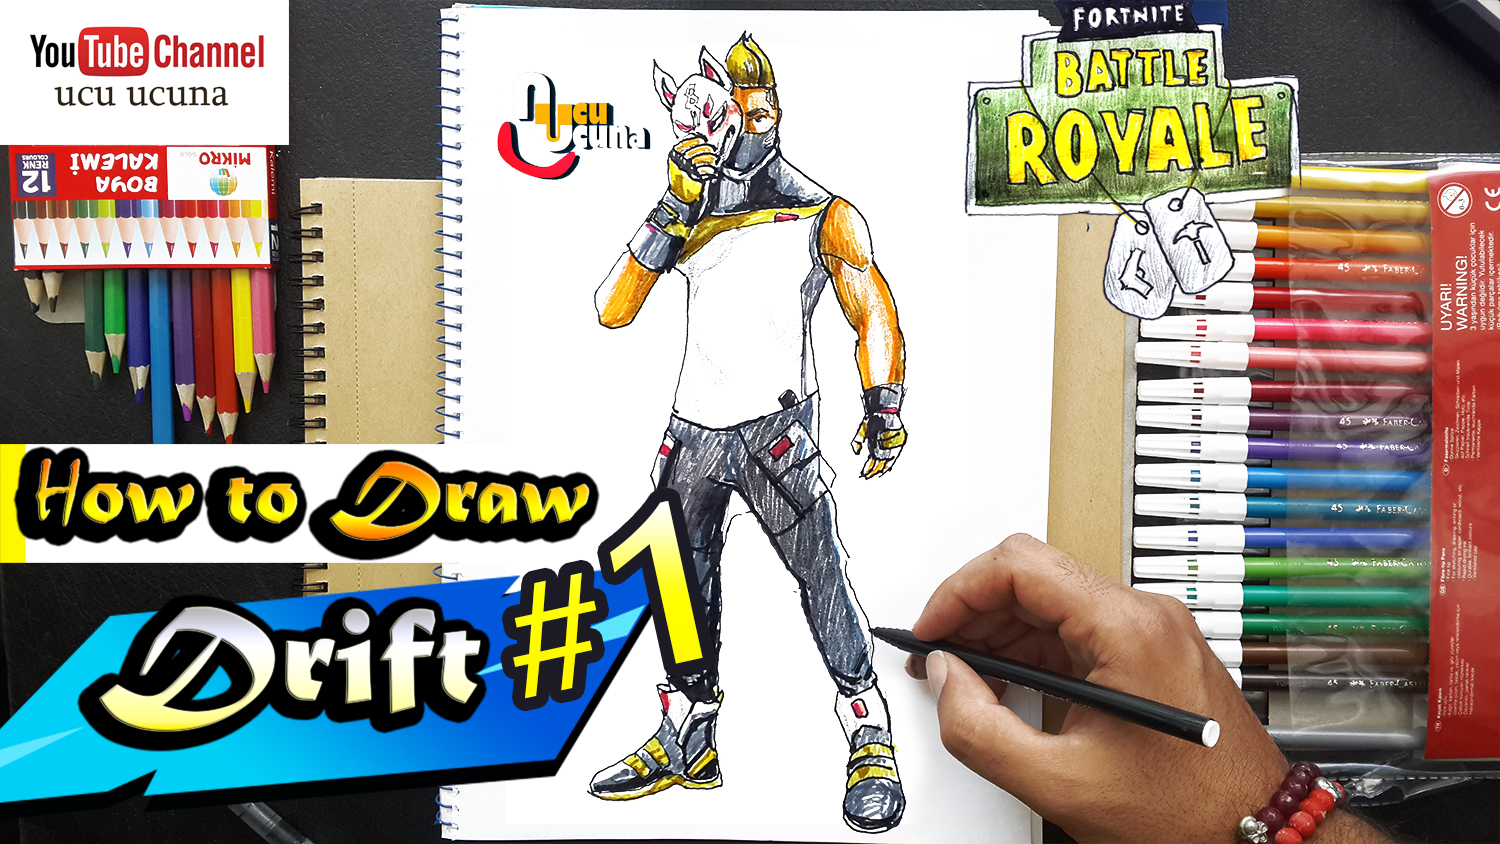 How to draw drift tutorial youtube channel name is ucu ucuna learn how to draw drift skin from fortnite step by step beginner drawing tutorial of the drift skin from fortnite